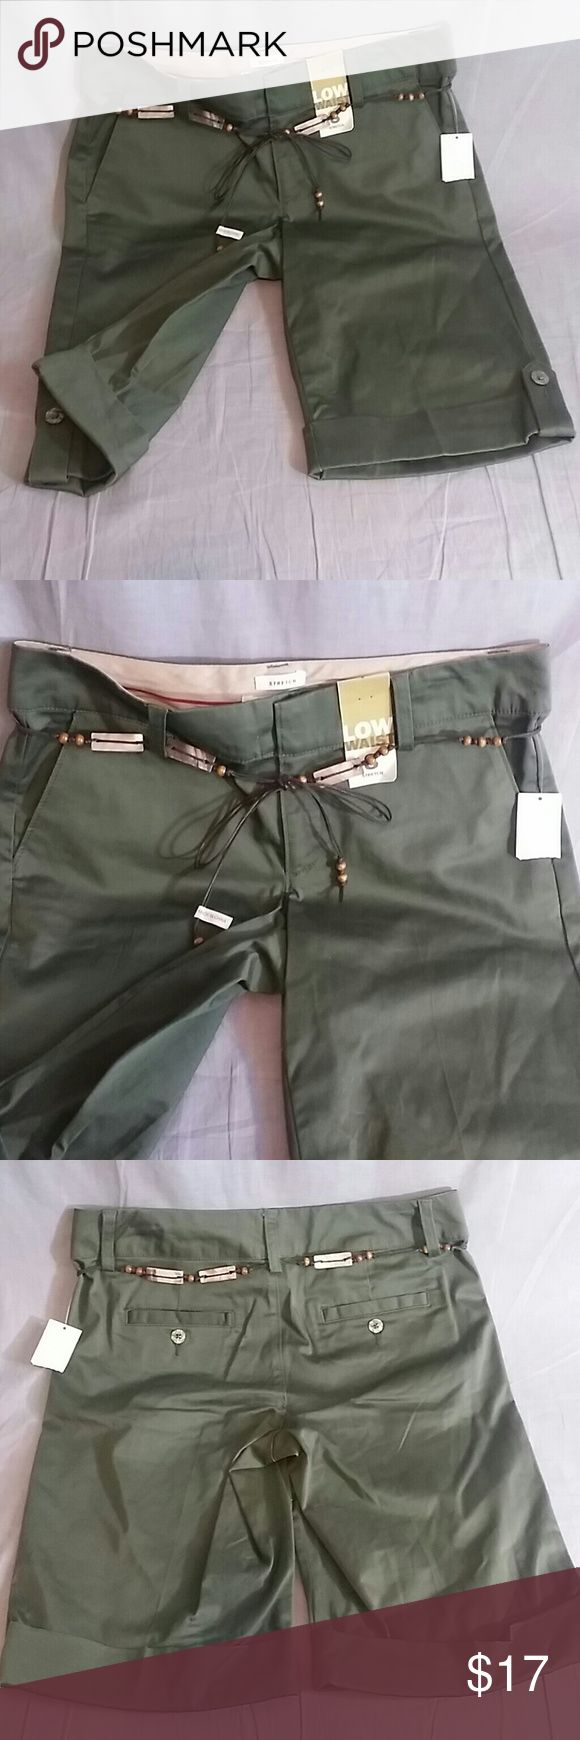 "OLD NAVY Bermudas Shorts Pants Green 8 NEW Women's shorts fabric 98% cotton 2% spandex low waist stretch measurements WAIST 16"" INSEAM 11.5"" TALL 20.5"" come's with the belt item is NEW Old Navy Shorts Bermudas"